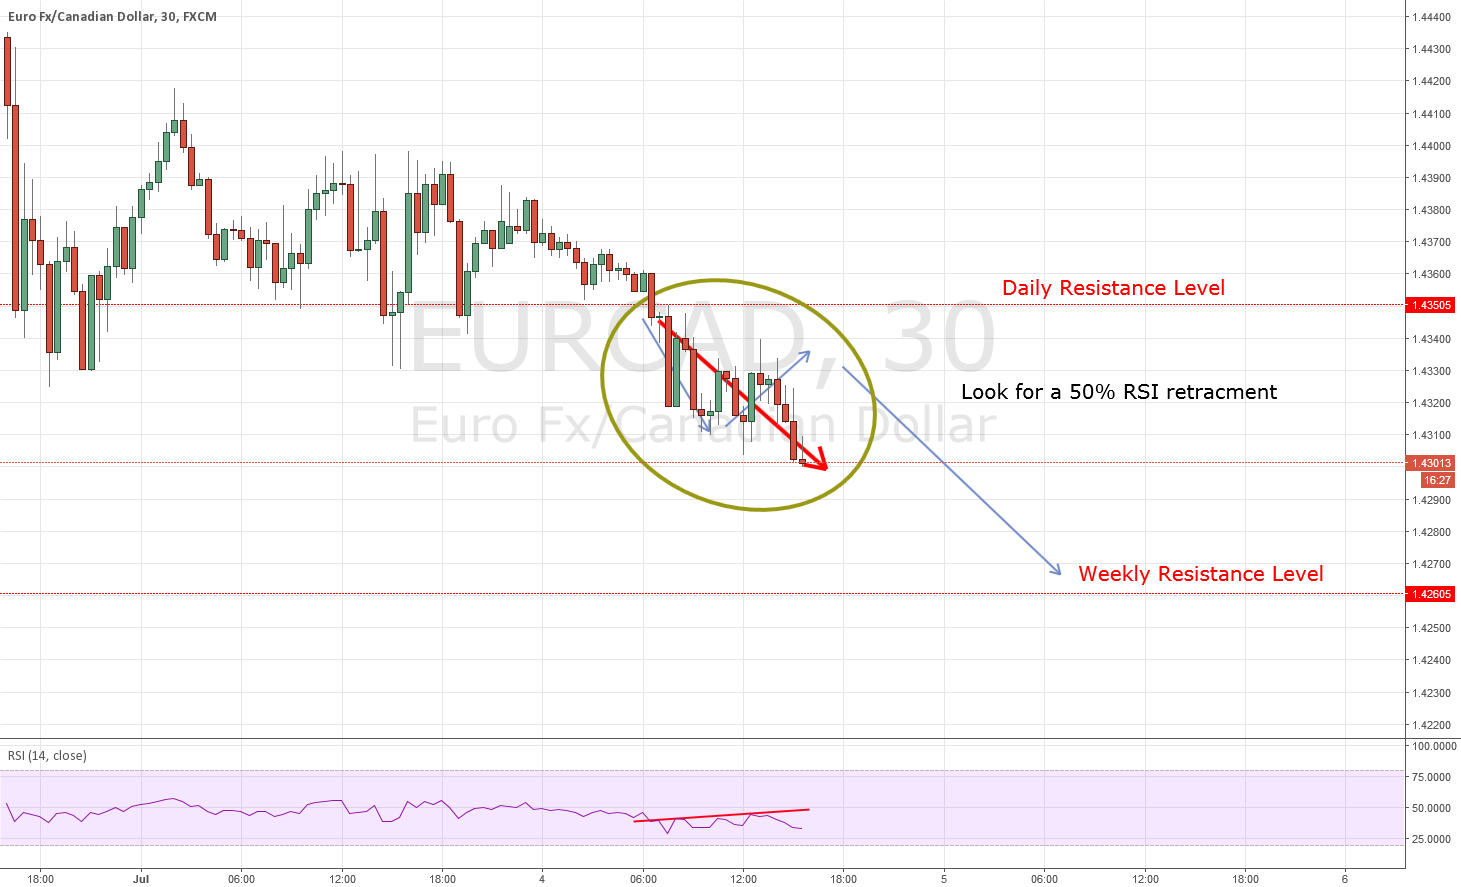 EURCAD: Possible Reversal Very Soon